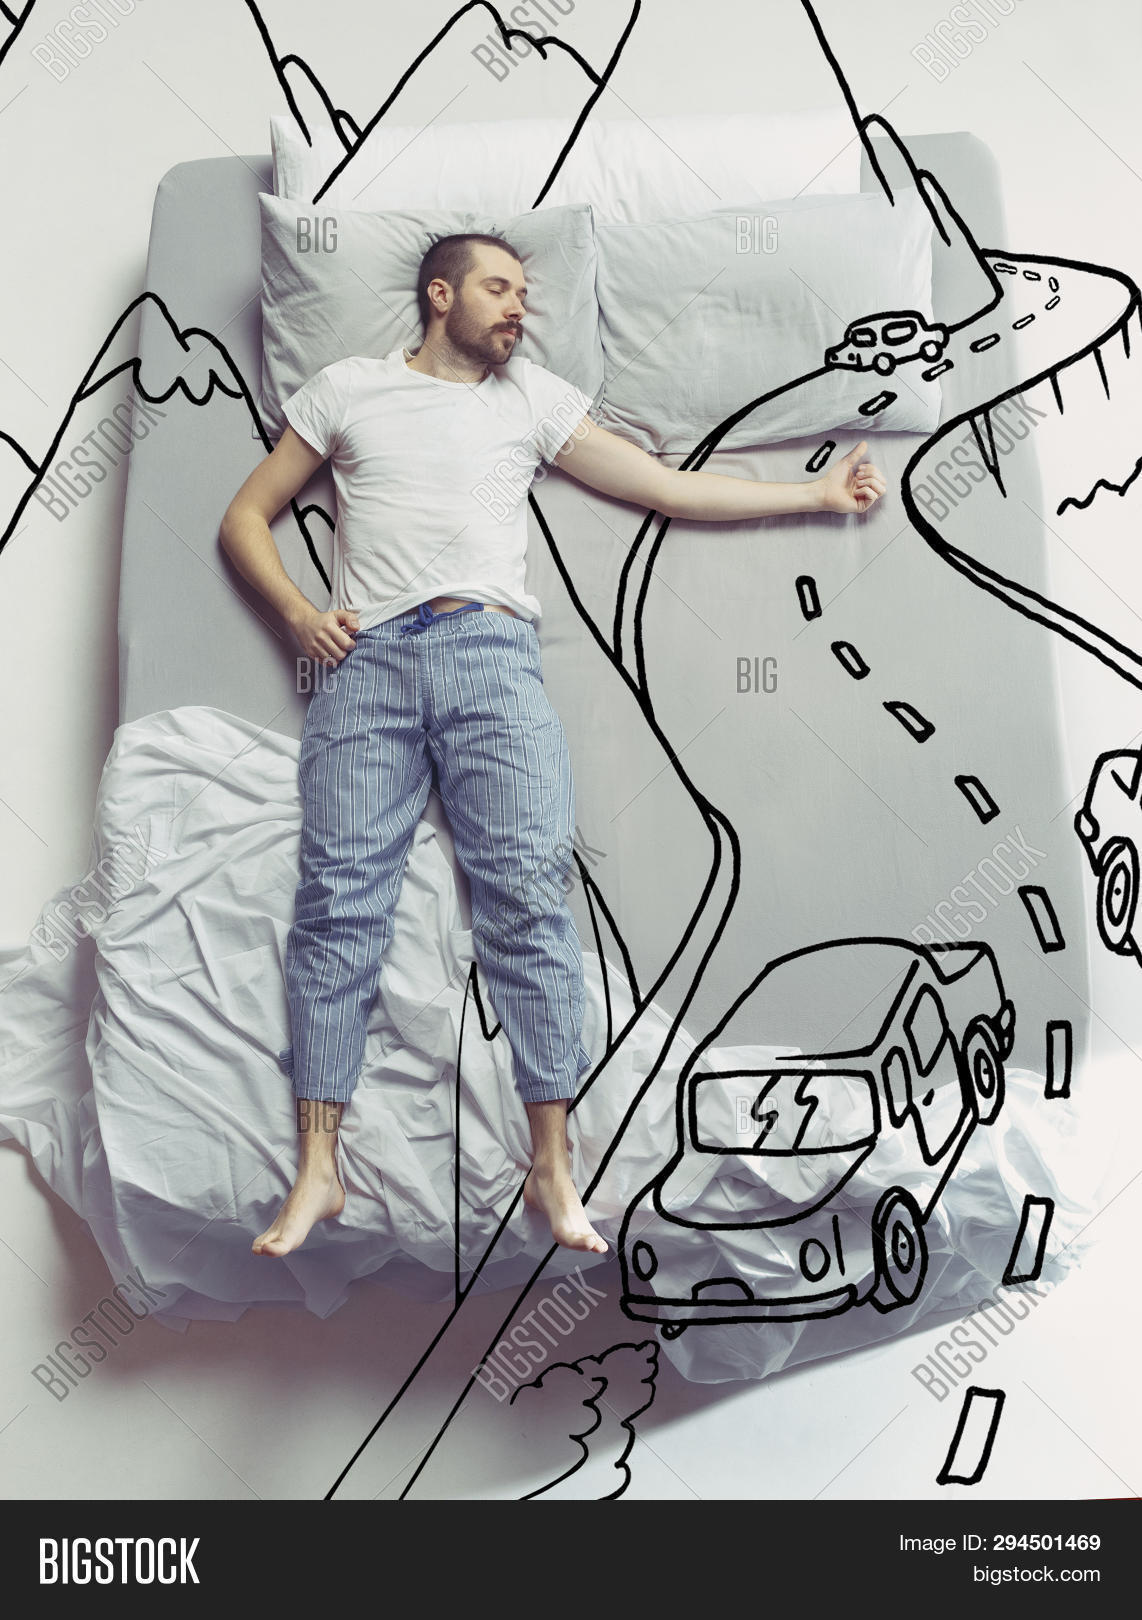 adult,art,bed,bedroom,bedtime,car,caucasian,comfortable,concept,conceptual,creative,creativity,desire,drawing,dream,dreaming,fantasize,handsome,hiking,hitch,home,imagine,inspiration,journey,lifestyle,lying,male,man,morning,mountains,night,one,painted,people,person,pillow,relaxation,rest,resting,sleep,sleeping,summer,top,tour,trip,view,vision,way,weekend,young